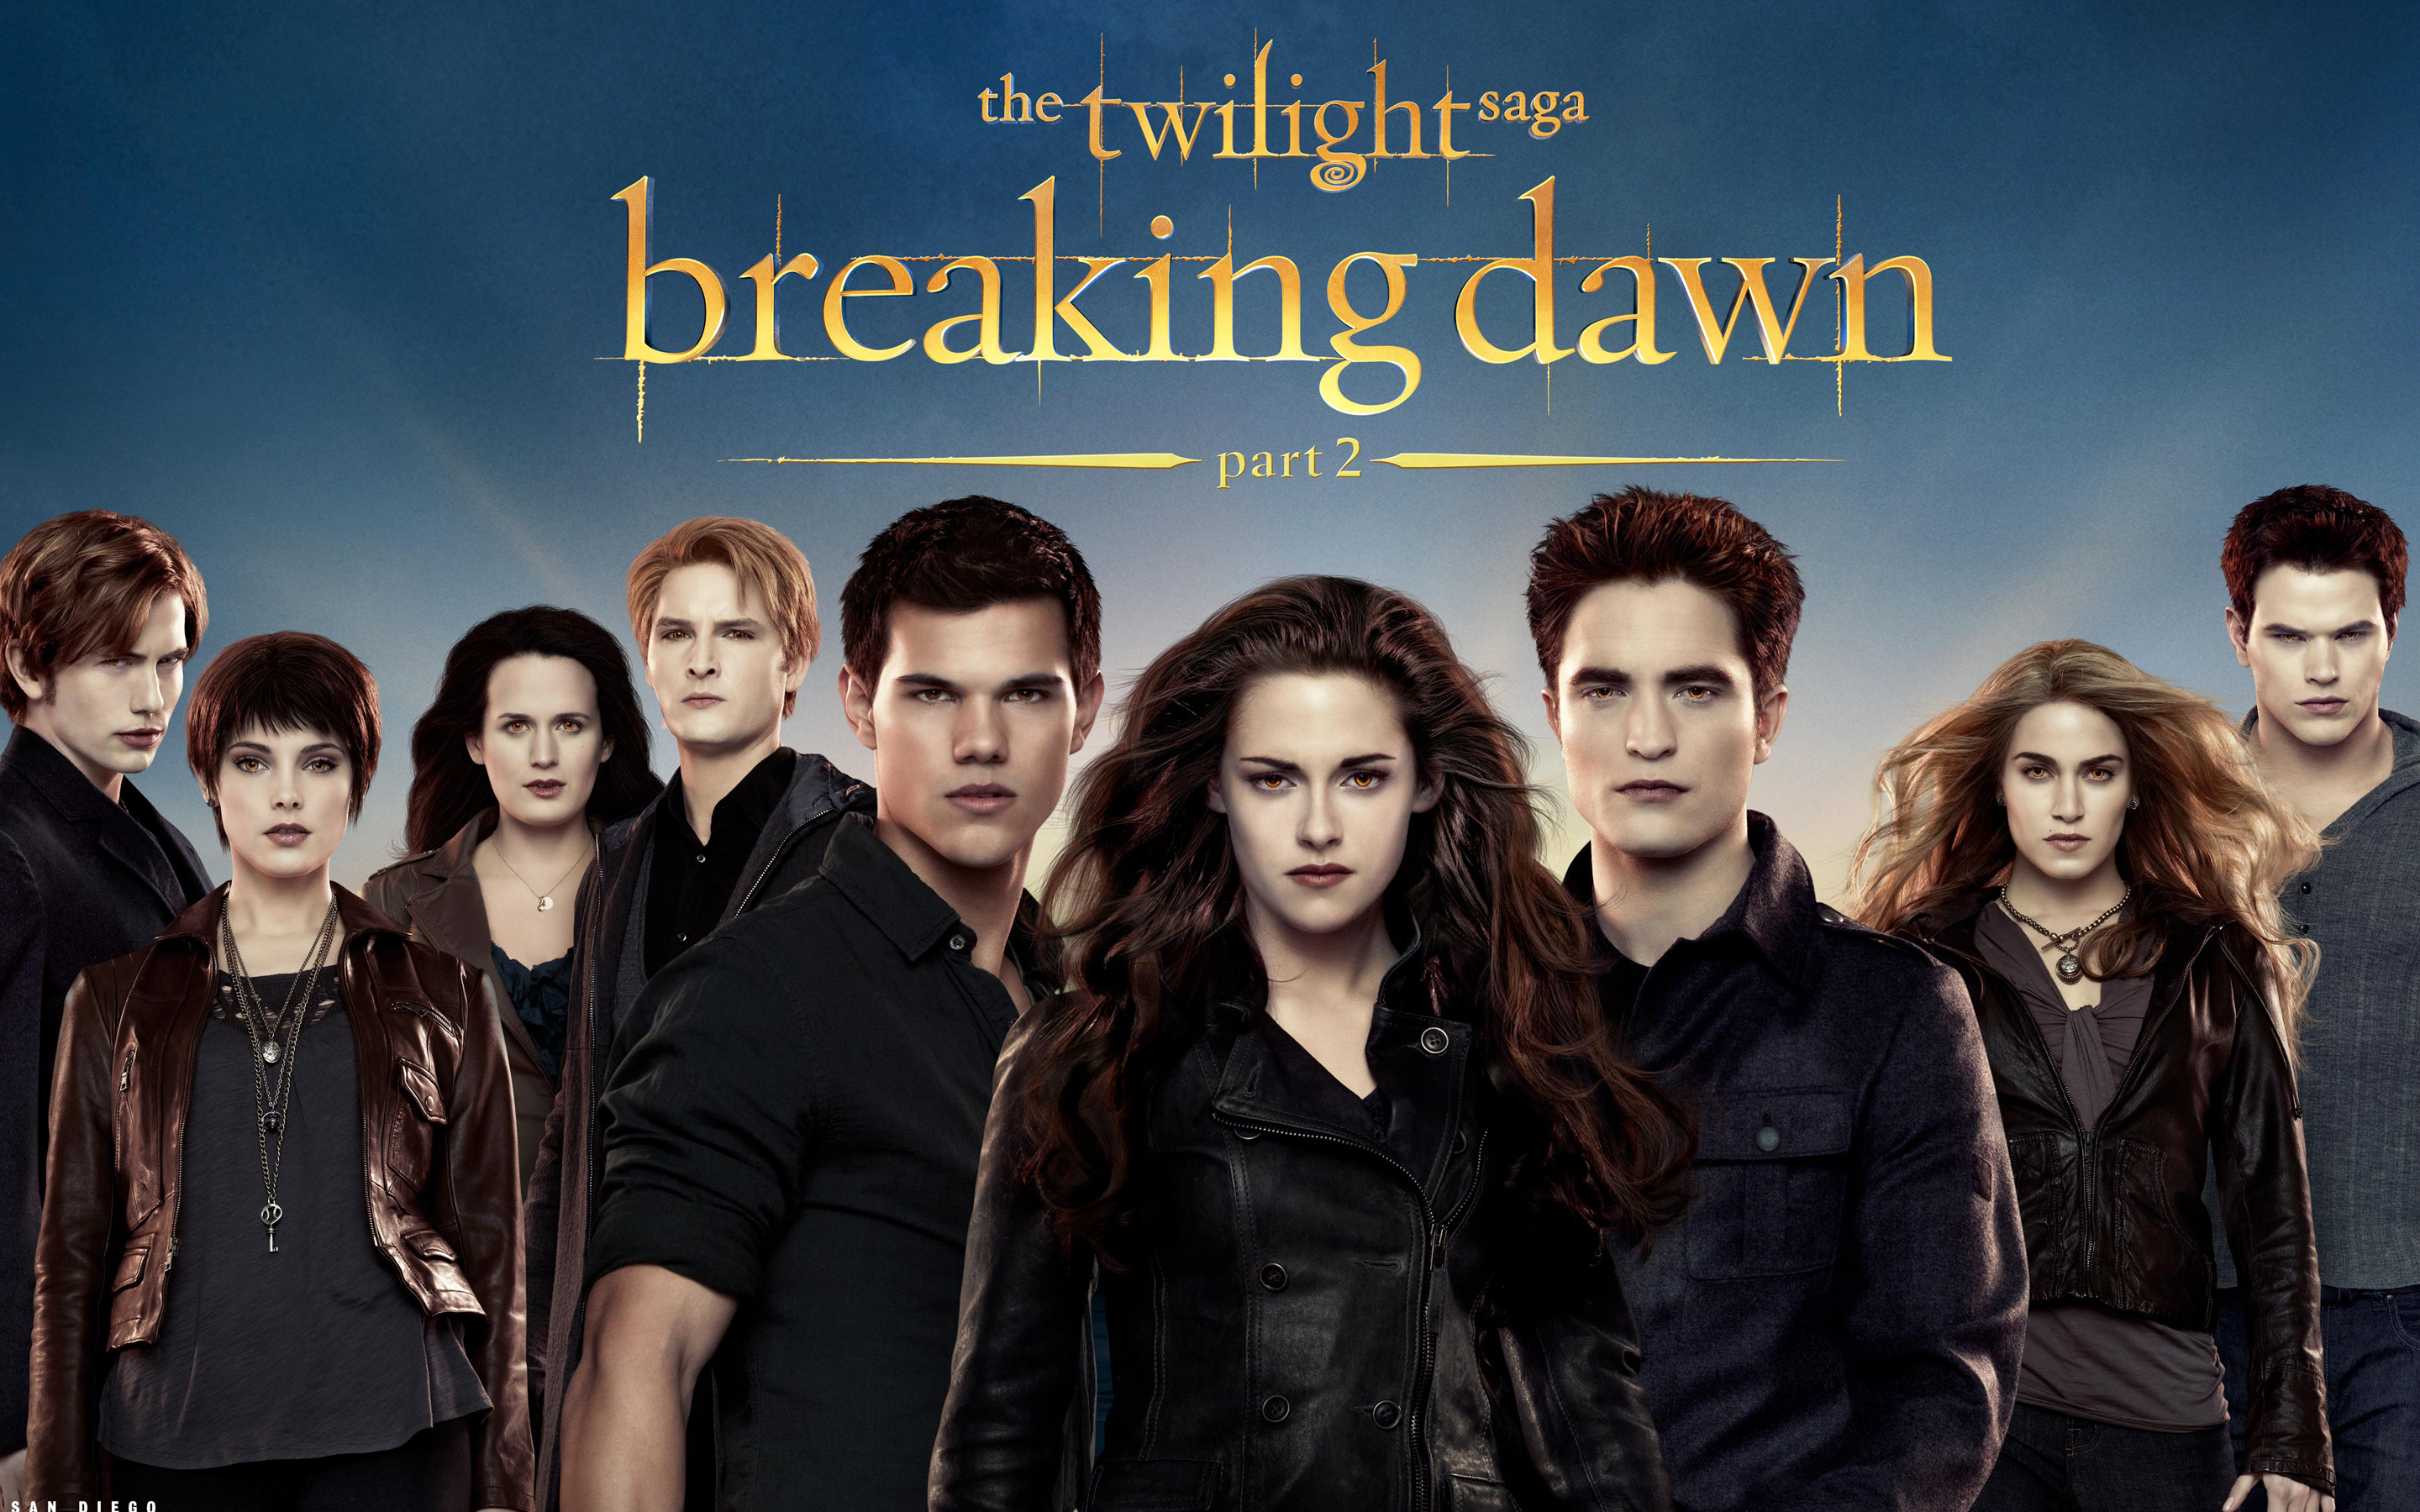 The Twilight Saga Breaking Dawn Part 2 wallpaper